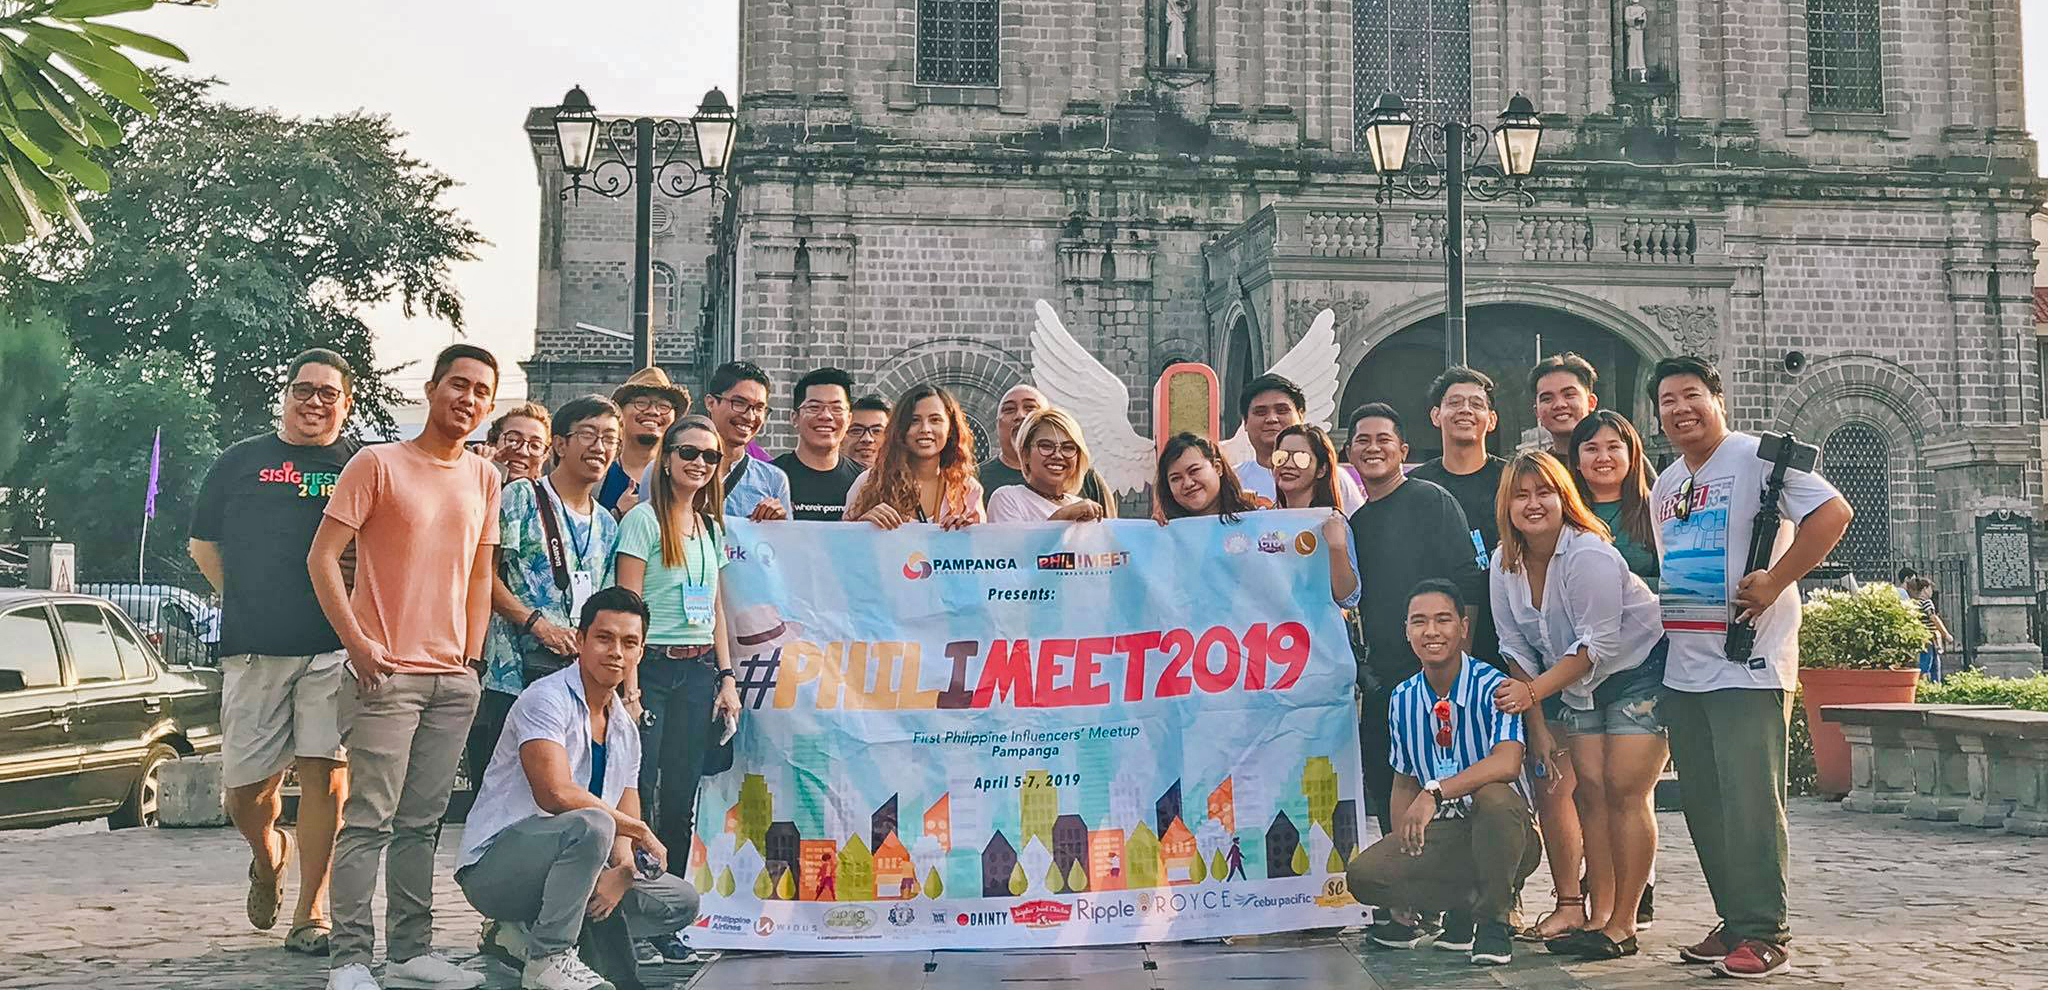 Pampanga Bloggers Society: 1st Philippine Influencers Meet Up 2019